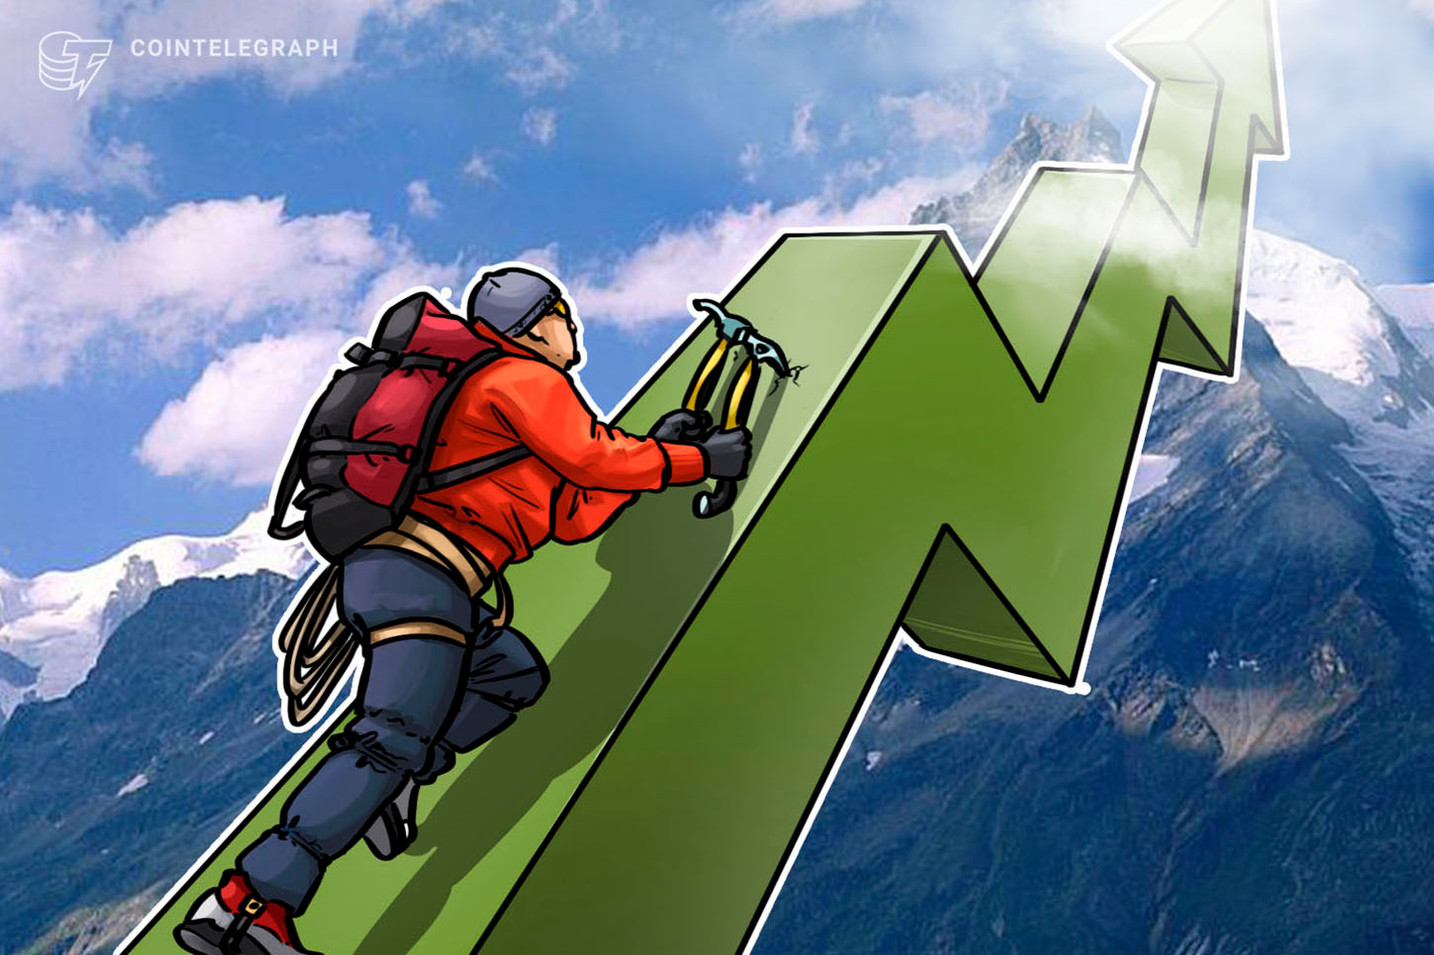 Crypto Markets Keep Fluctuating: Most Top 20 Coins Back in Green, Bitcoin Above $6,700